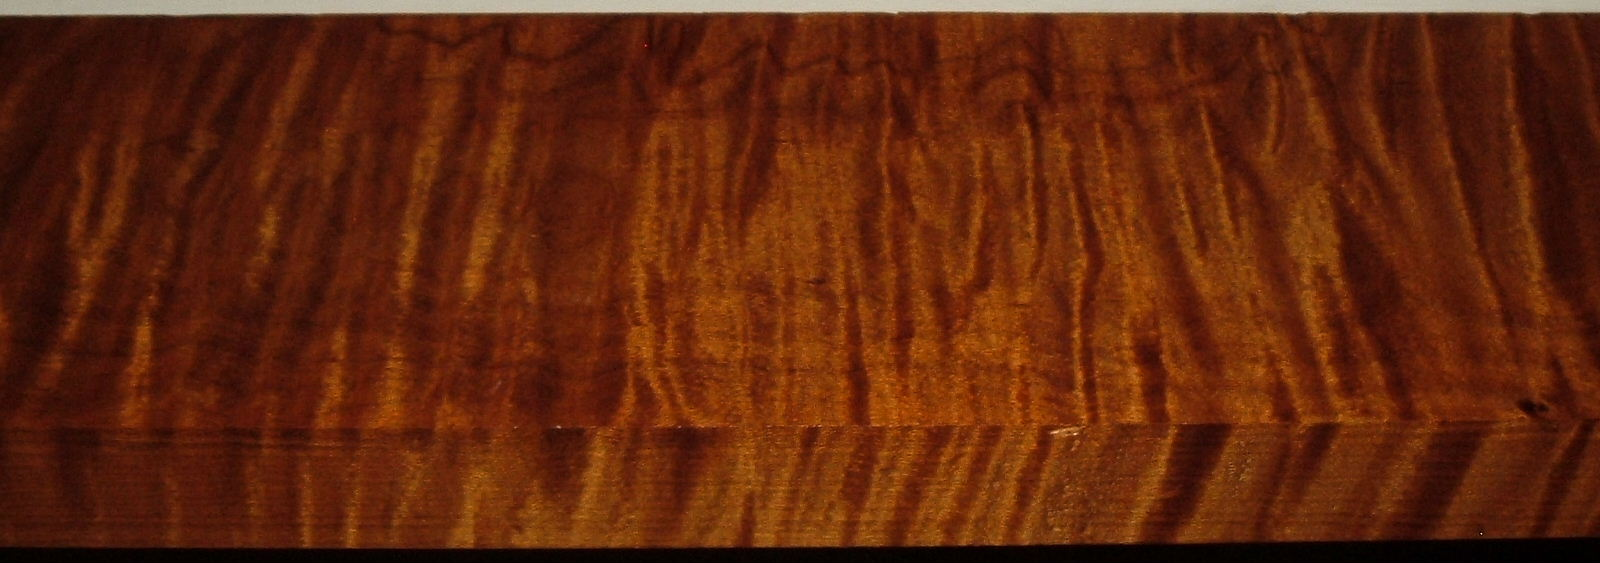 RM2004-101, 1-7/16x4-3/4x46, Roasted Torrefied Curly, Tiger Maple